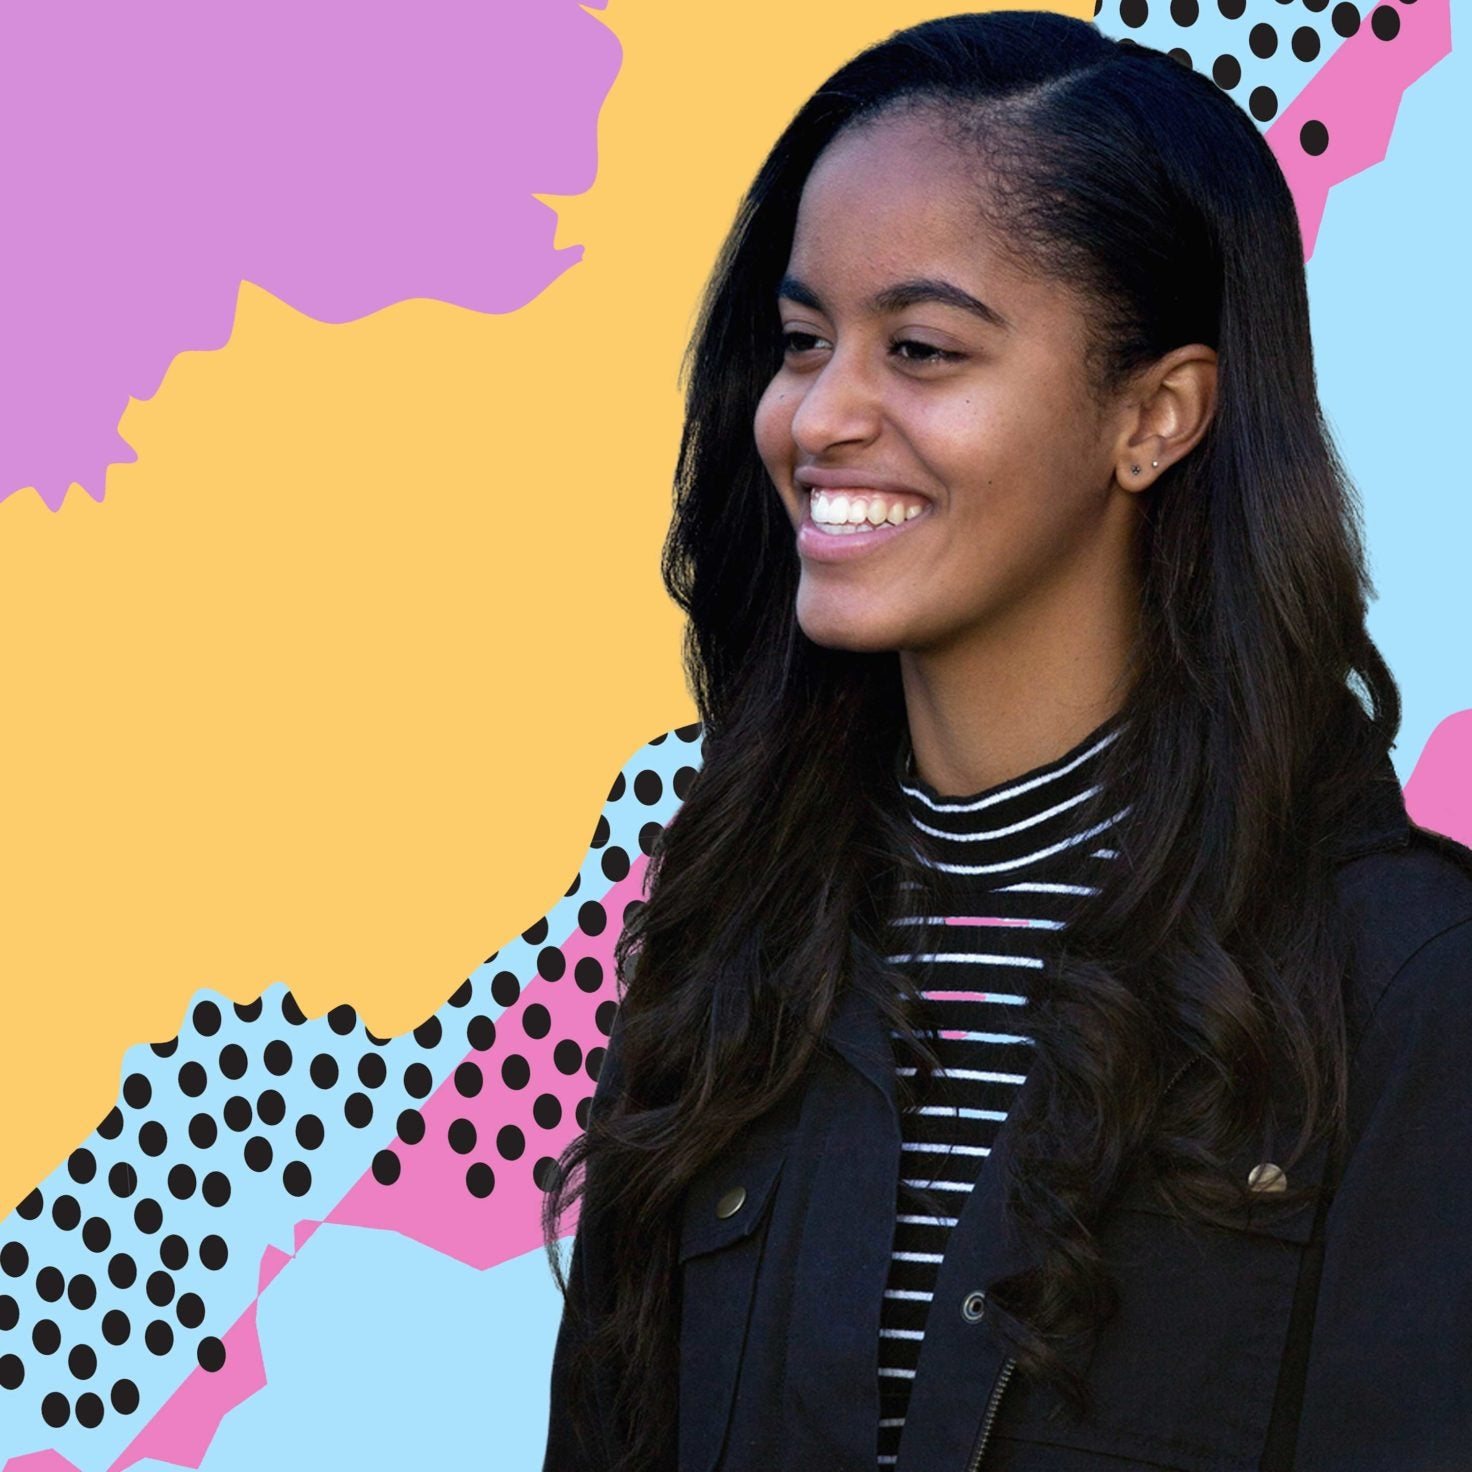 Malia Obama Steps Out In New York City With A Fresh Braided Style